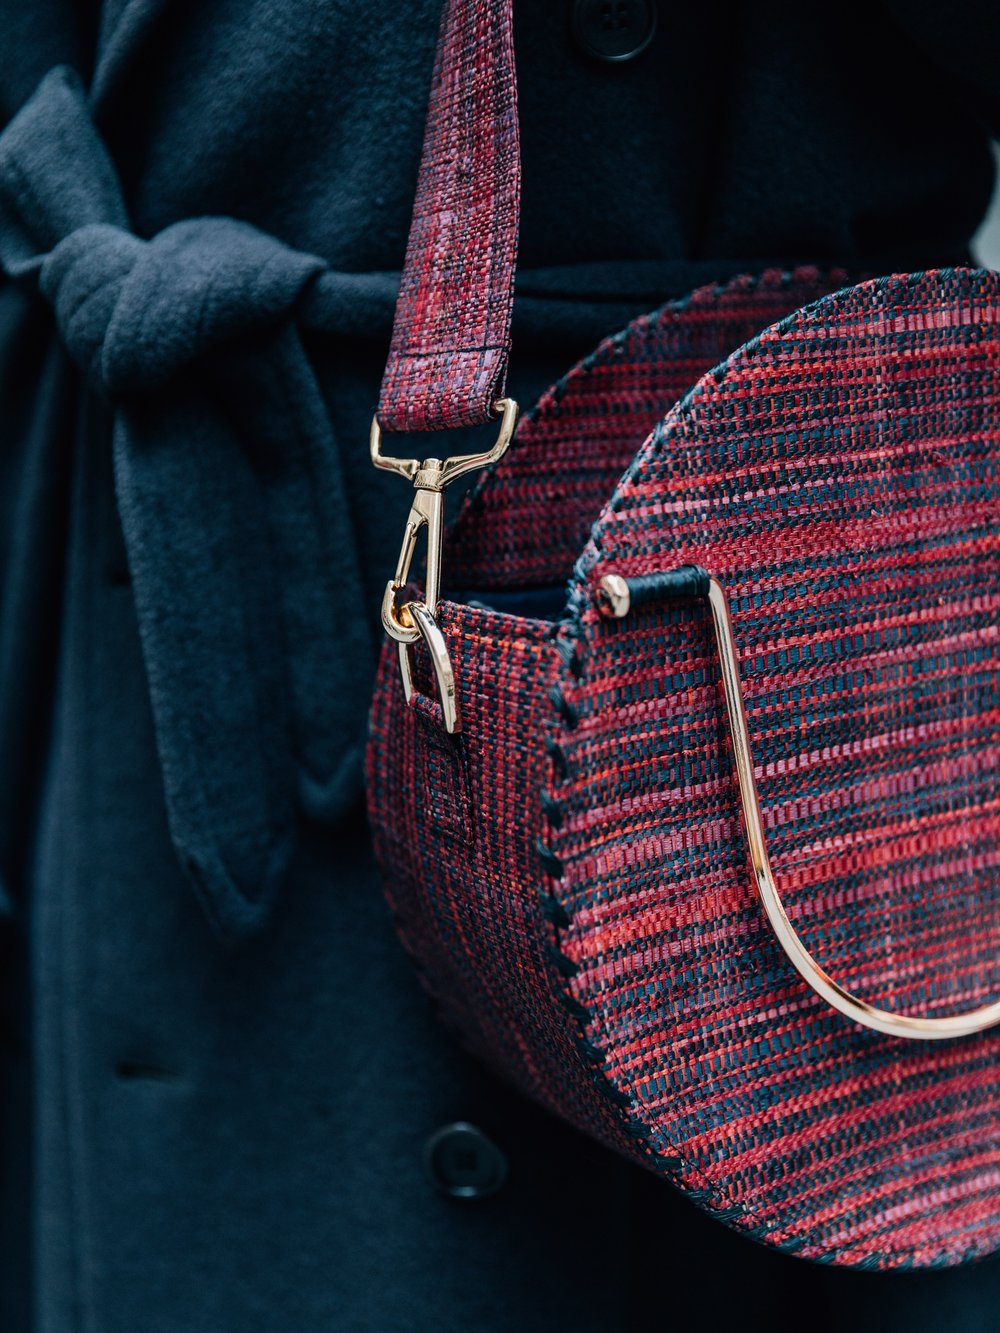 GOOD PEOPLE, France - Good People is a high-end brand of artisanal handbags. They use natural fibres such as agave and raffia to develop their own handwoven fabrics. Good People run their own transparent manufacturing centre and workshop in Madagascar, where women artisans inspire and shape the designs of timeless, authentic and sophisticated collections.